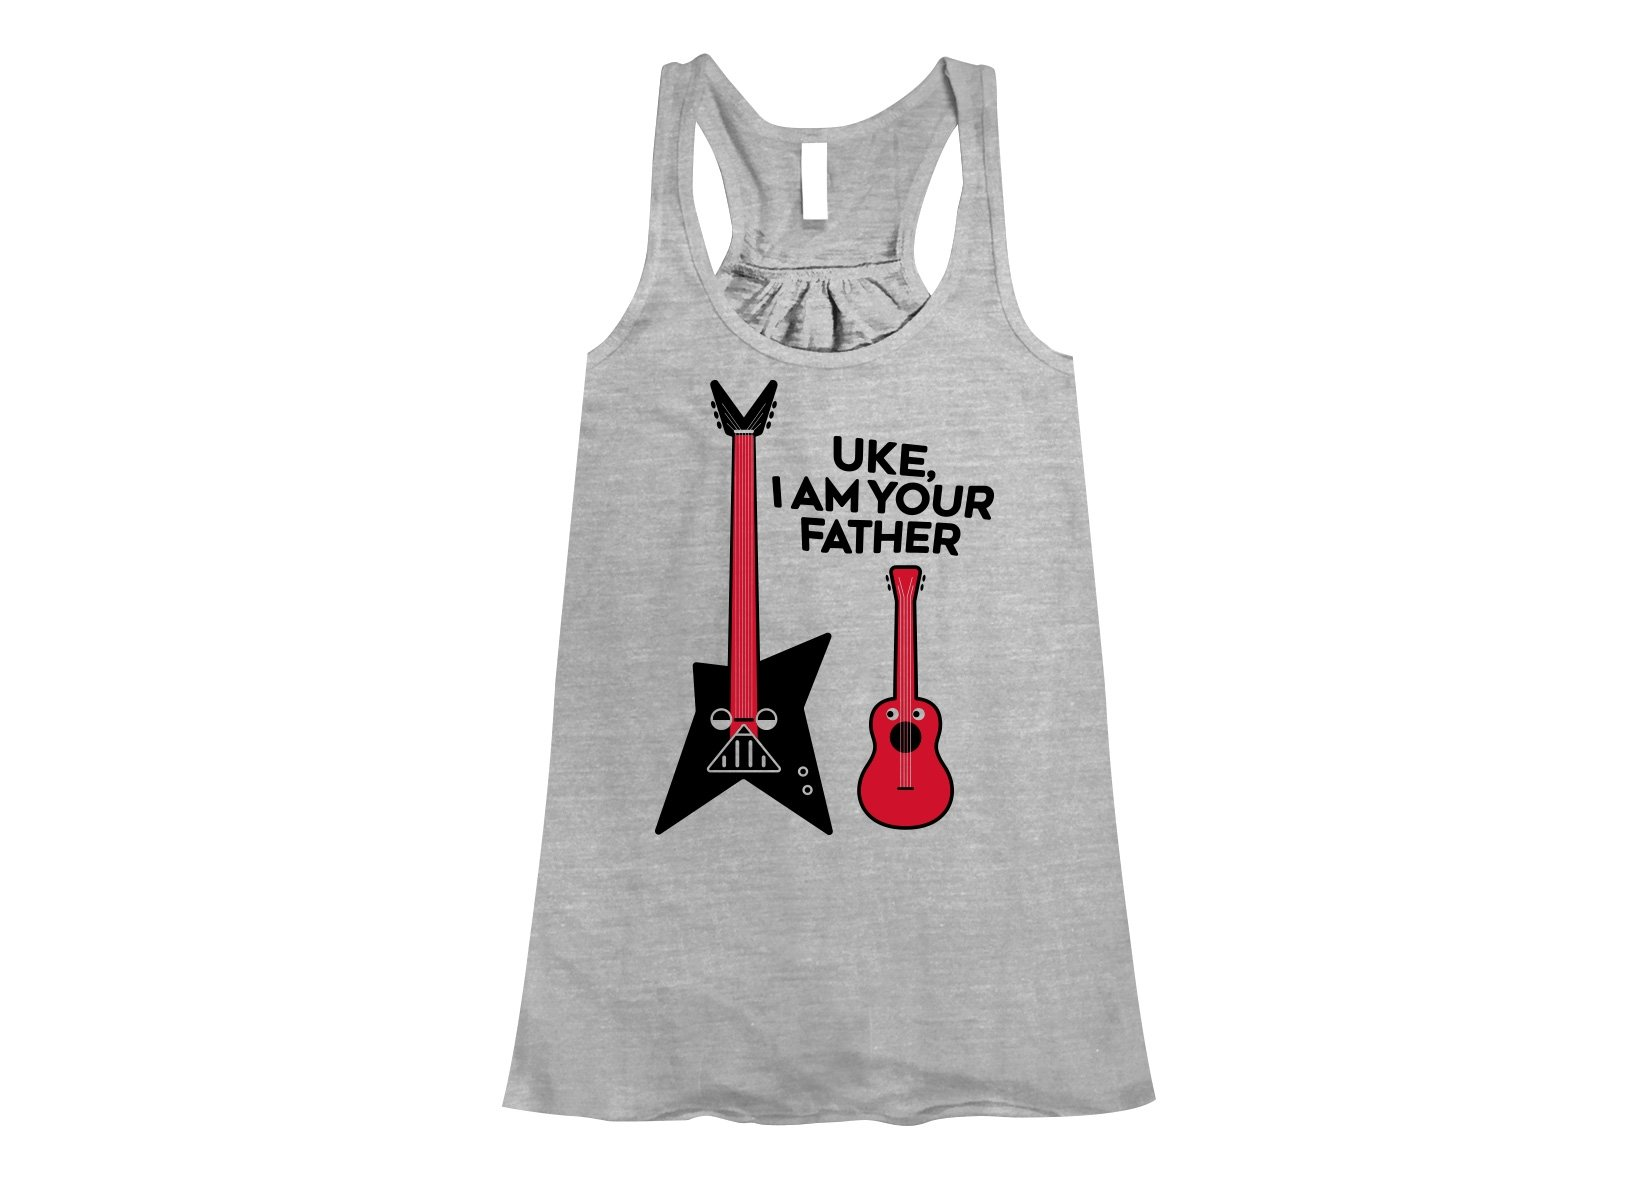 Uke, I Am Your Father on Womens Tanks T-Shirt